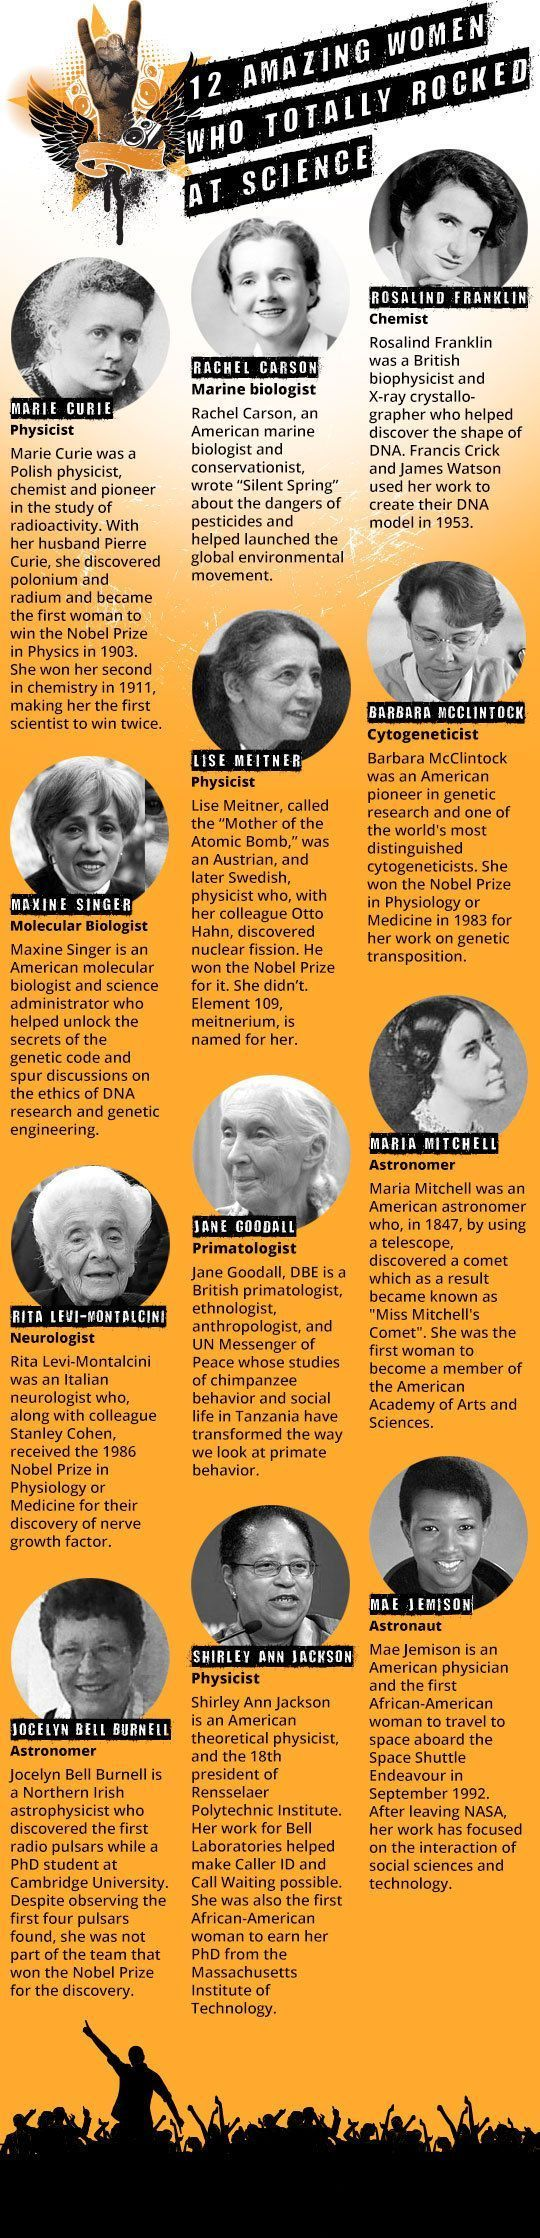 12 Amazing Women Who Totally Rocked at Science Jennifer Lawinski | March 11, 2014